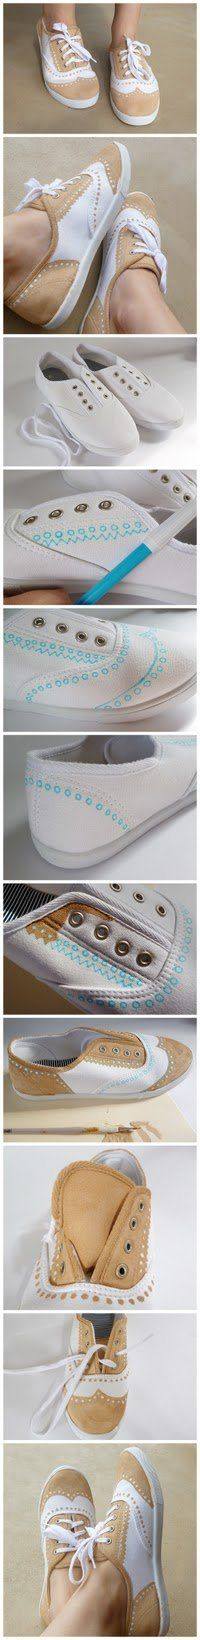 DIY crafts / DIY saddle shoes! - MikeLike